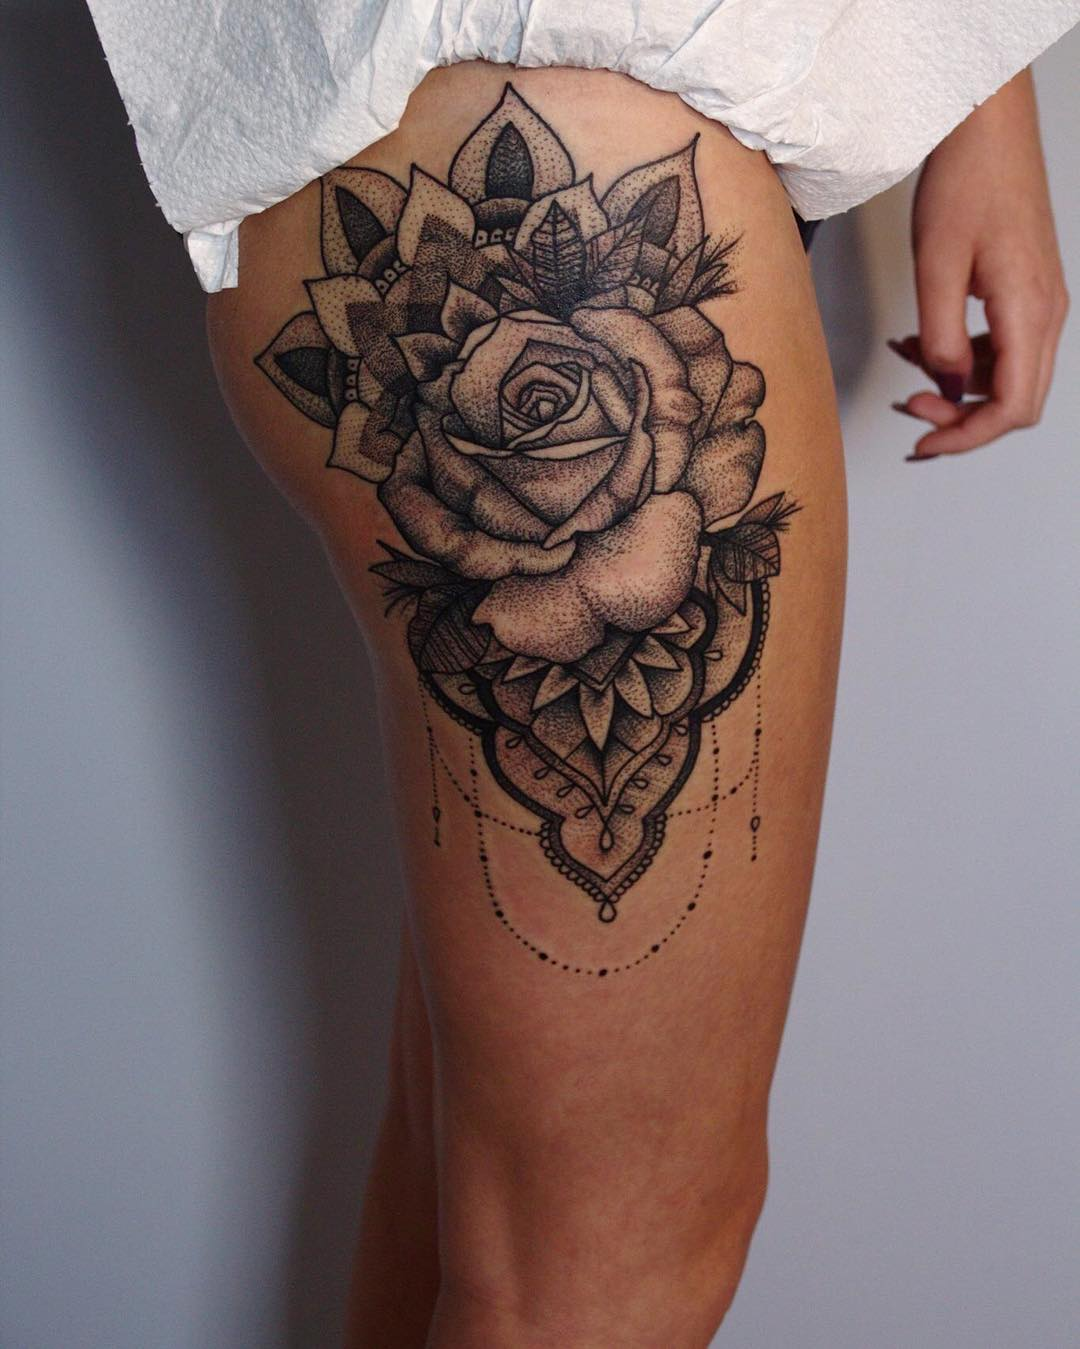 50 Glorious Rose Tattoo Design Ideas That You Ever Seen: Rose-tattoo-large-thigh-design